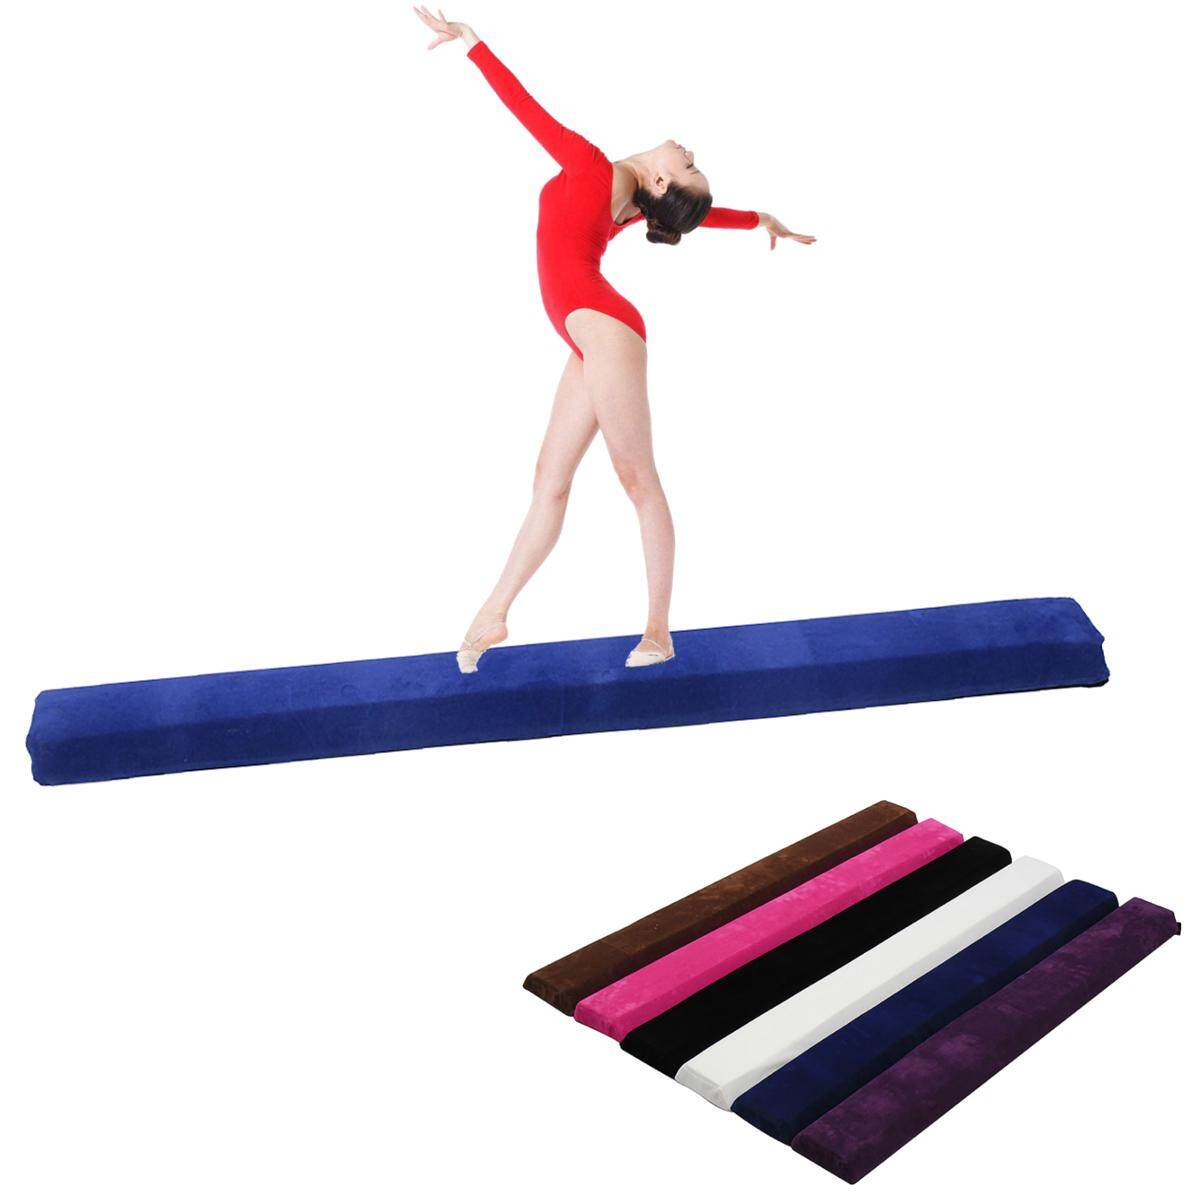 【free Shipping + Flash Deal】115 X 10 X 10 Cm Balance Beam Gymnastics Training Sport Practice Injuries Tumble Mat By Audew.